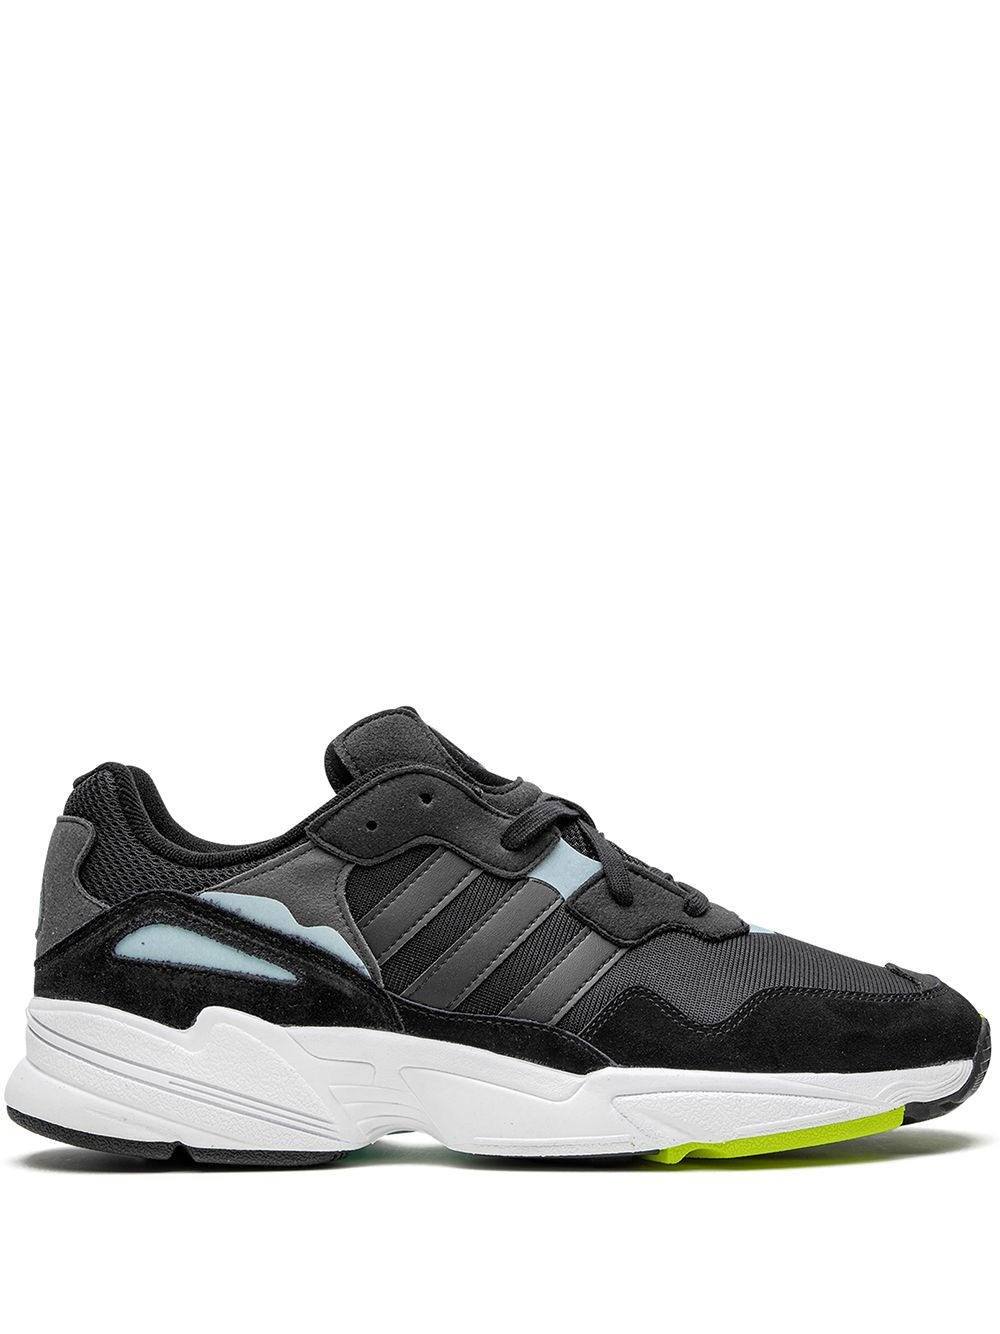 adidas Yung-96 low-top sneakers - Black von adidas